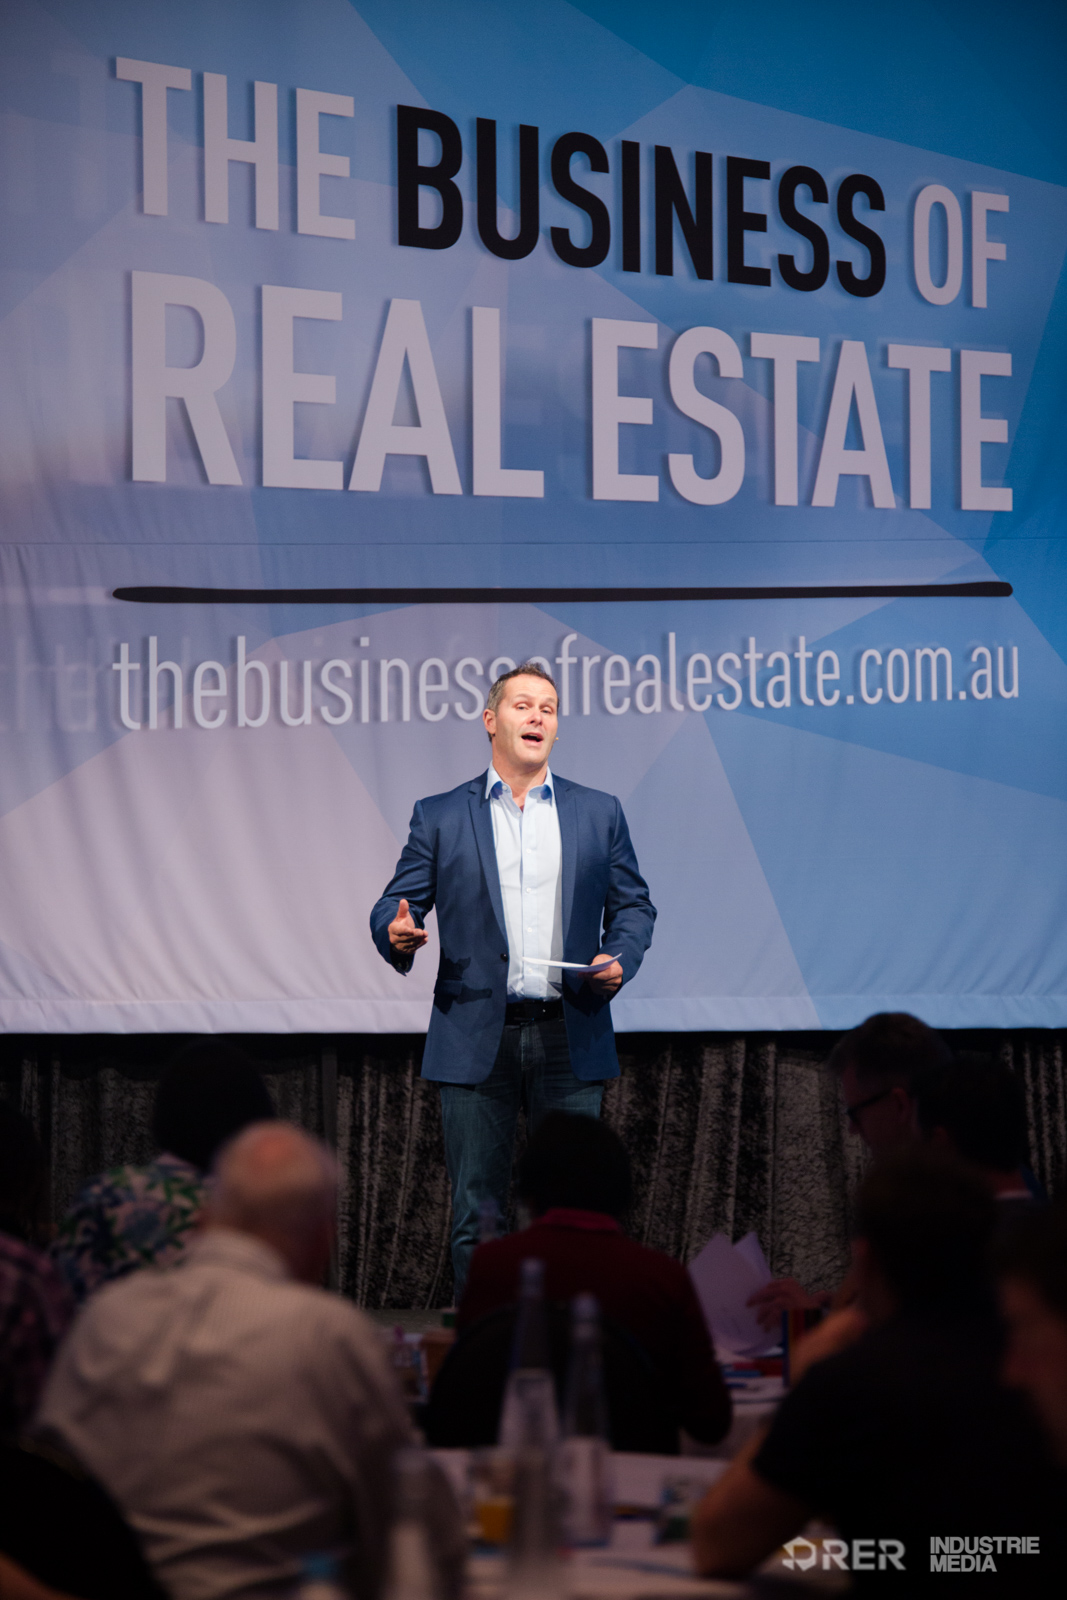 http://www.thebusinessofrealestate.com.au/wp-content/uploads/2016/09/RER_BUSINESS_OF_REAL_ESTATE-57.jpg